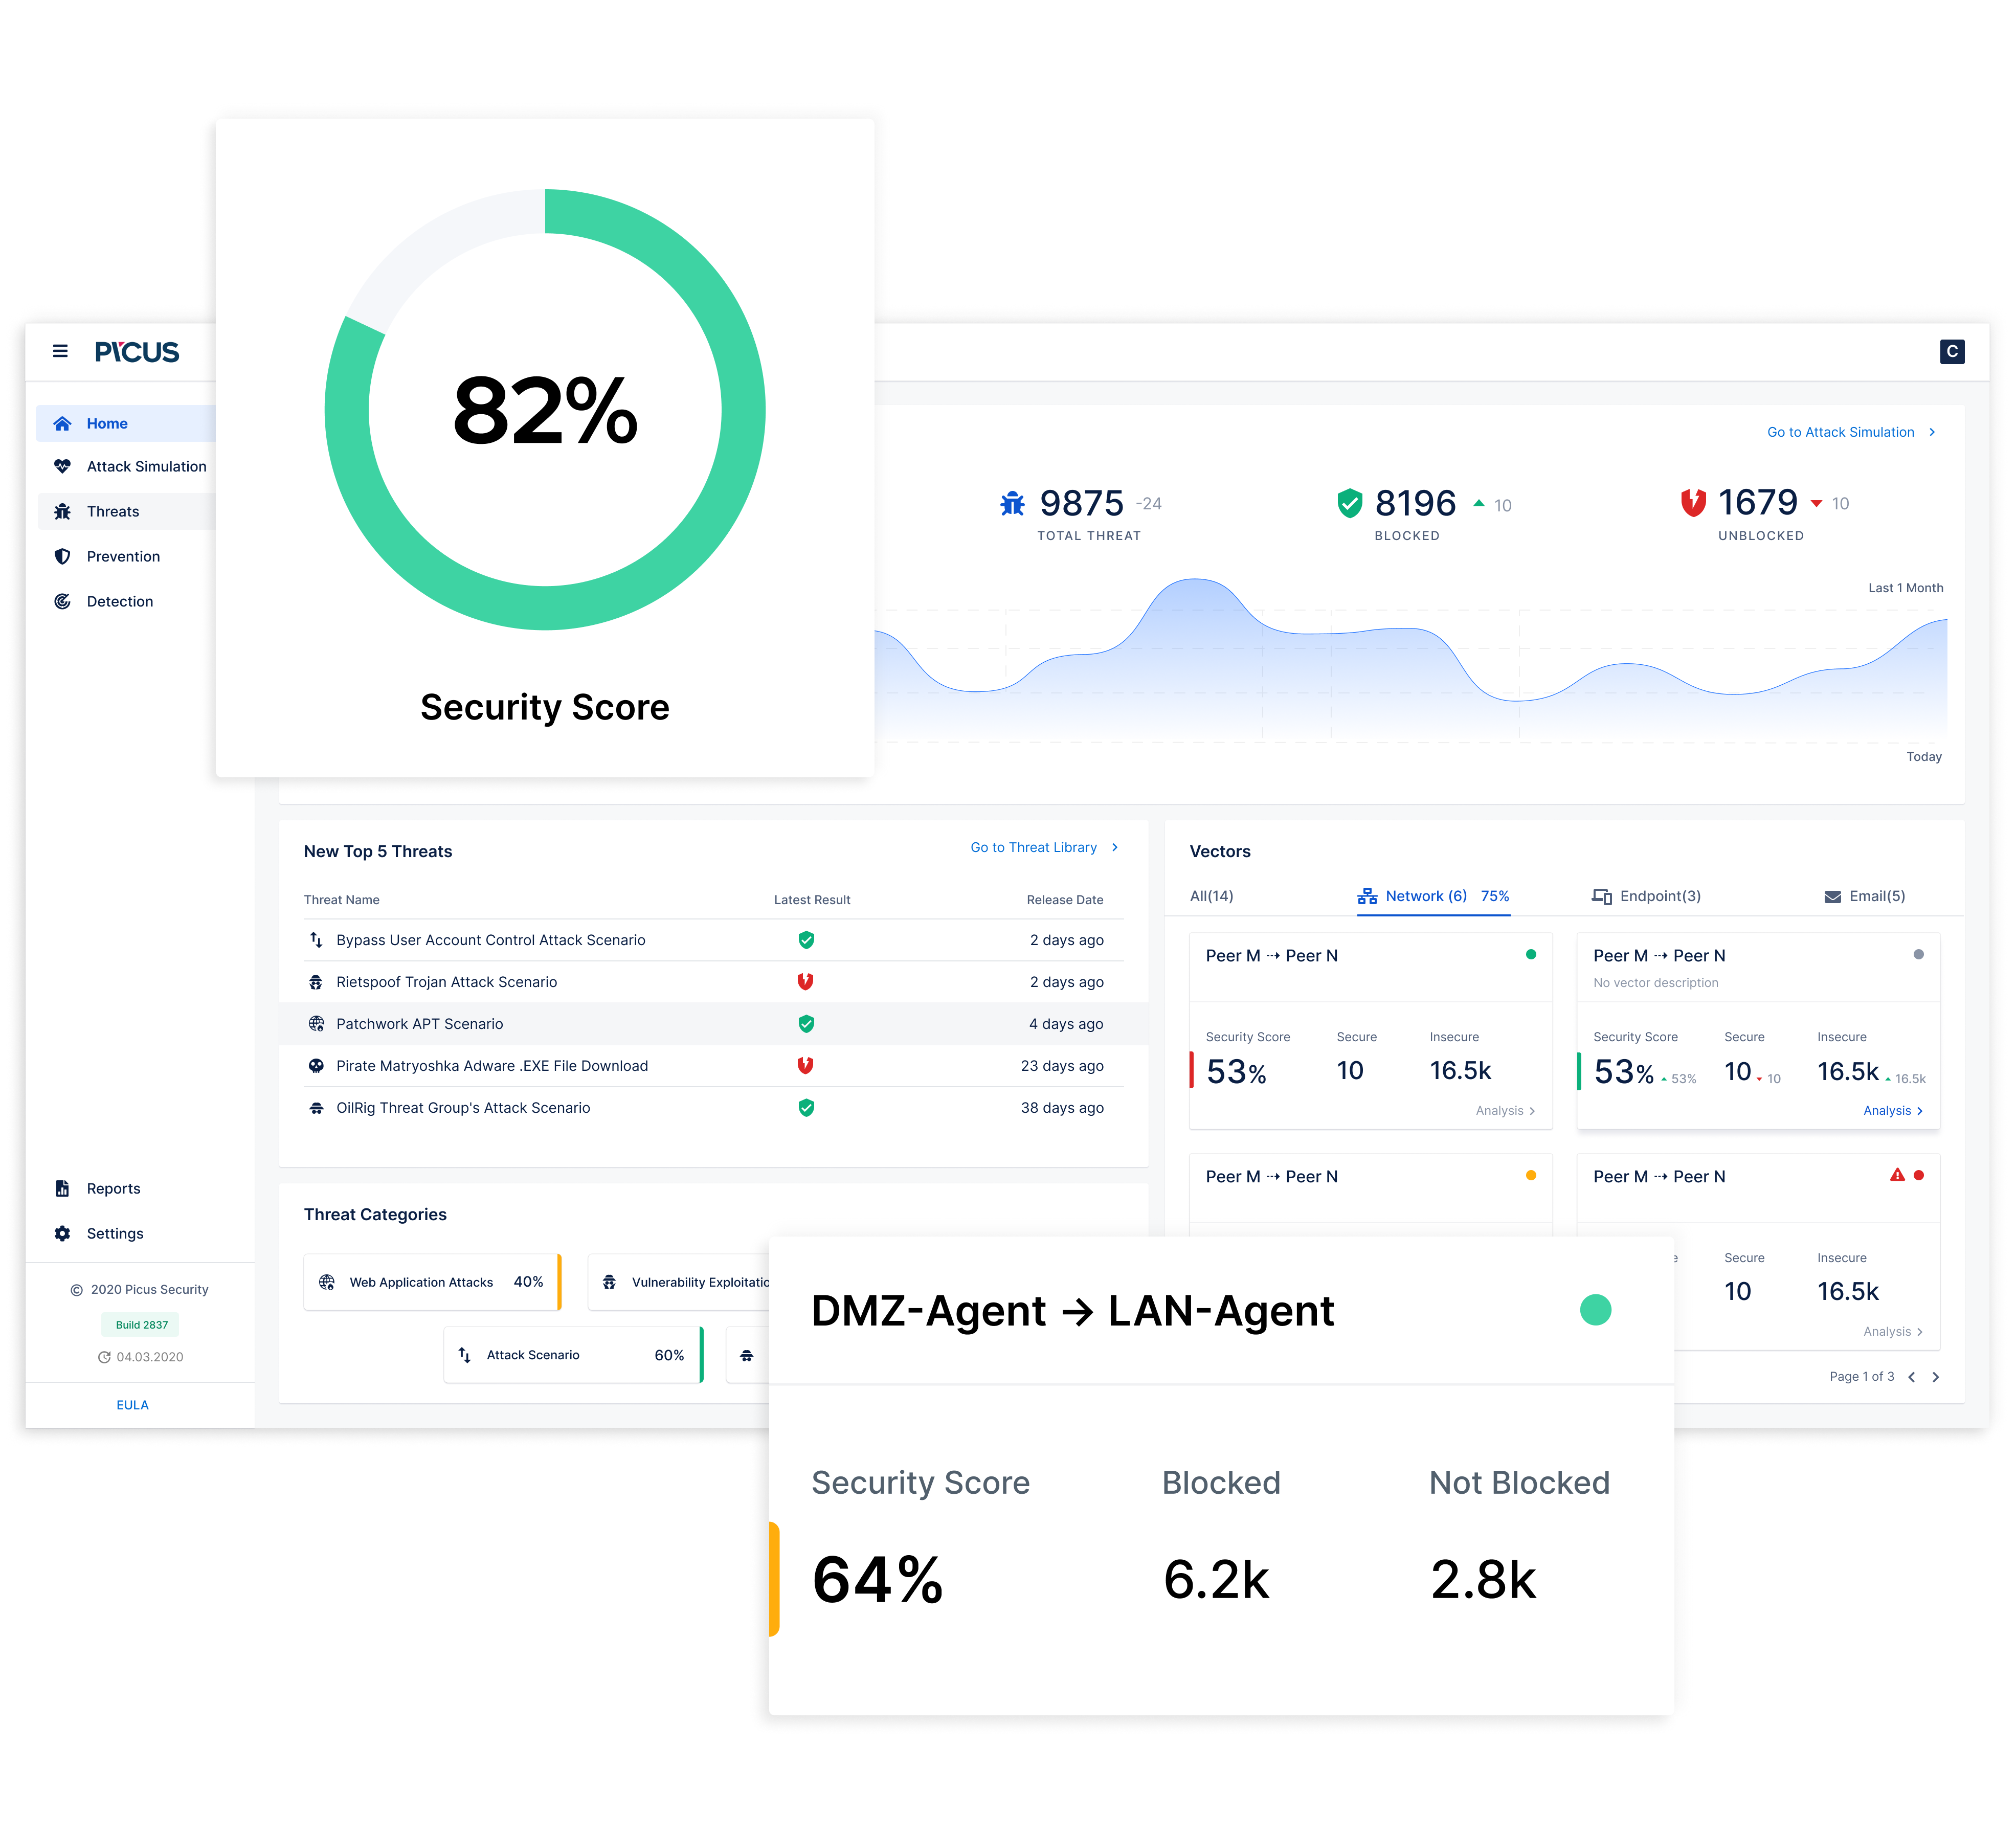 Picus-Security-Score-Dashboard